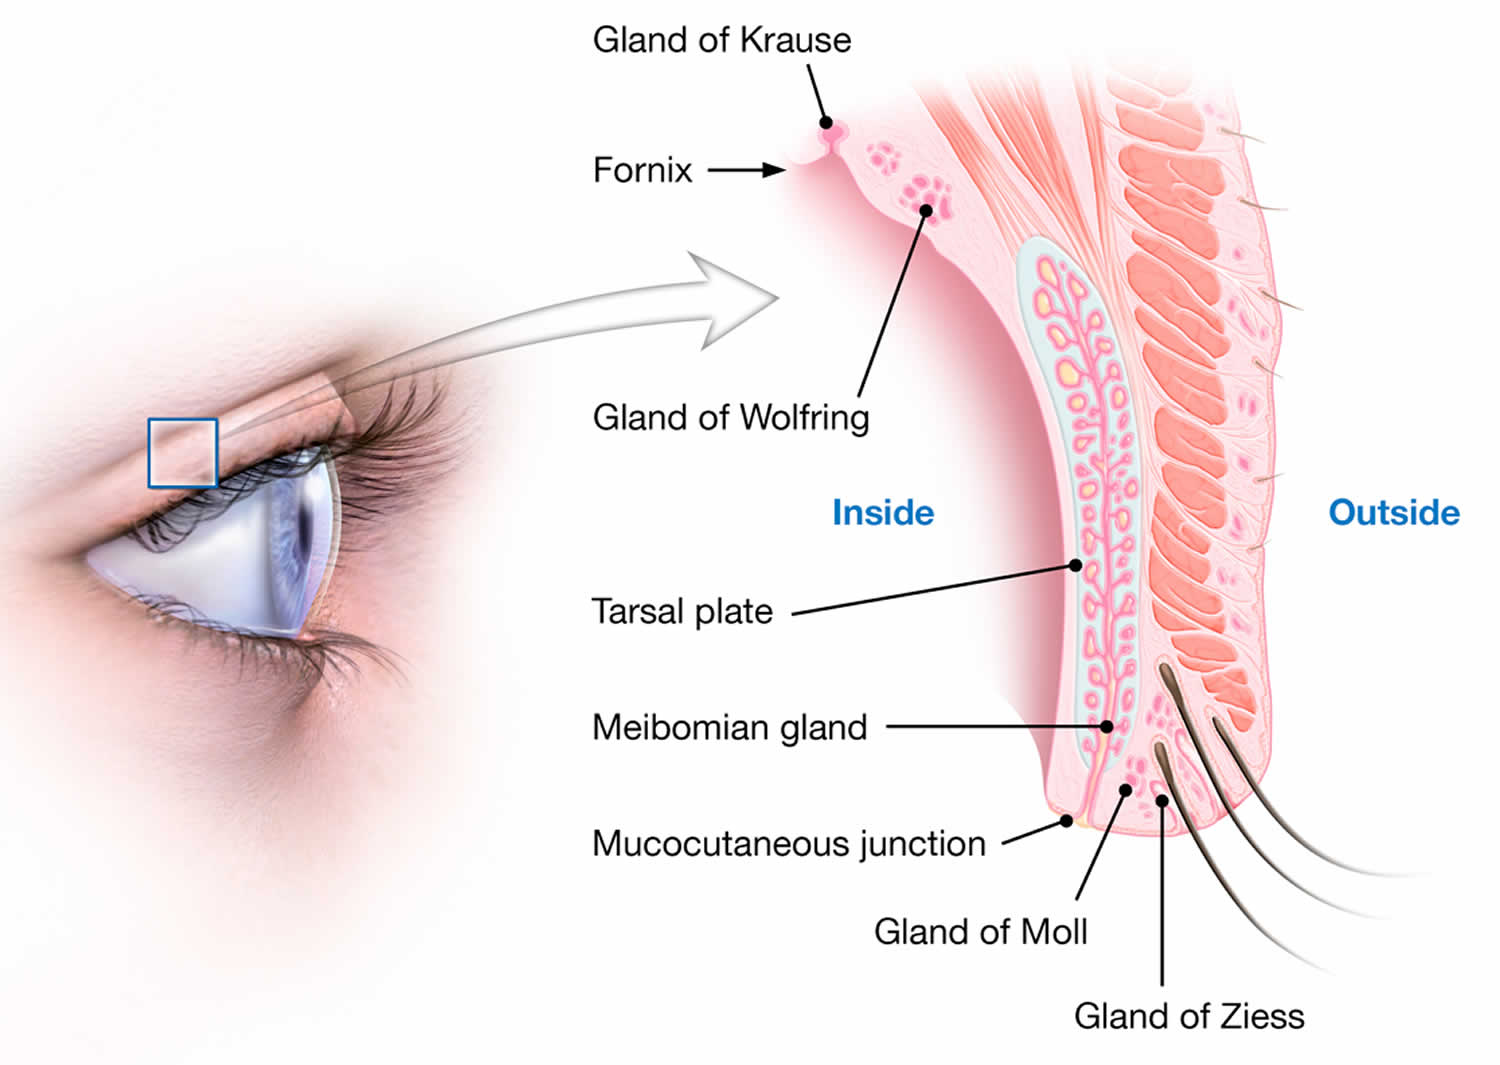 Pimple On Eyelid - Types, Causes & How To Treat Them